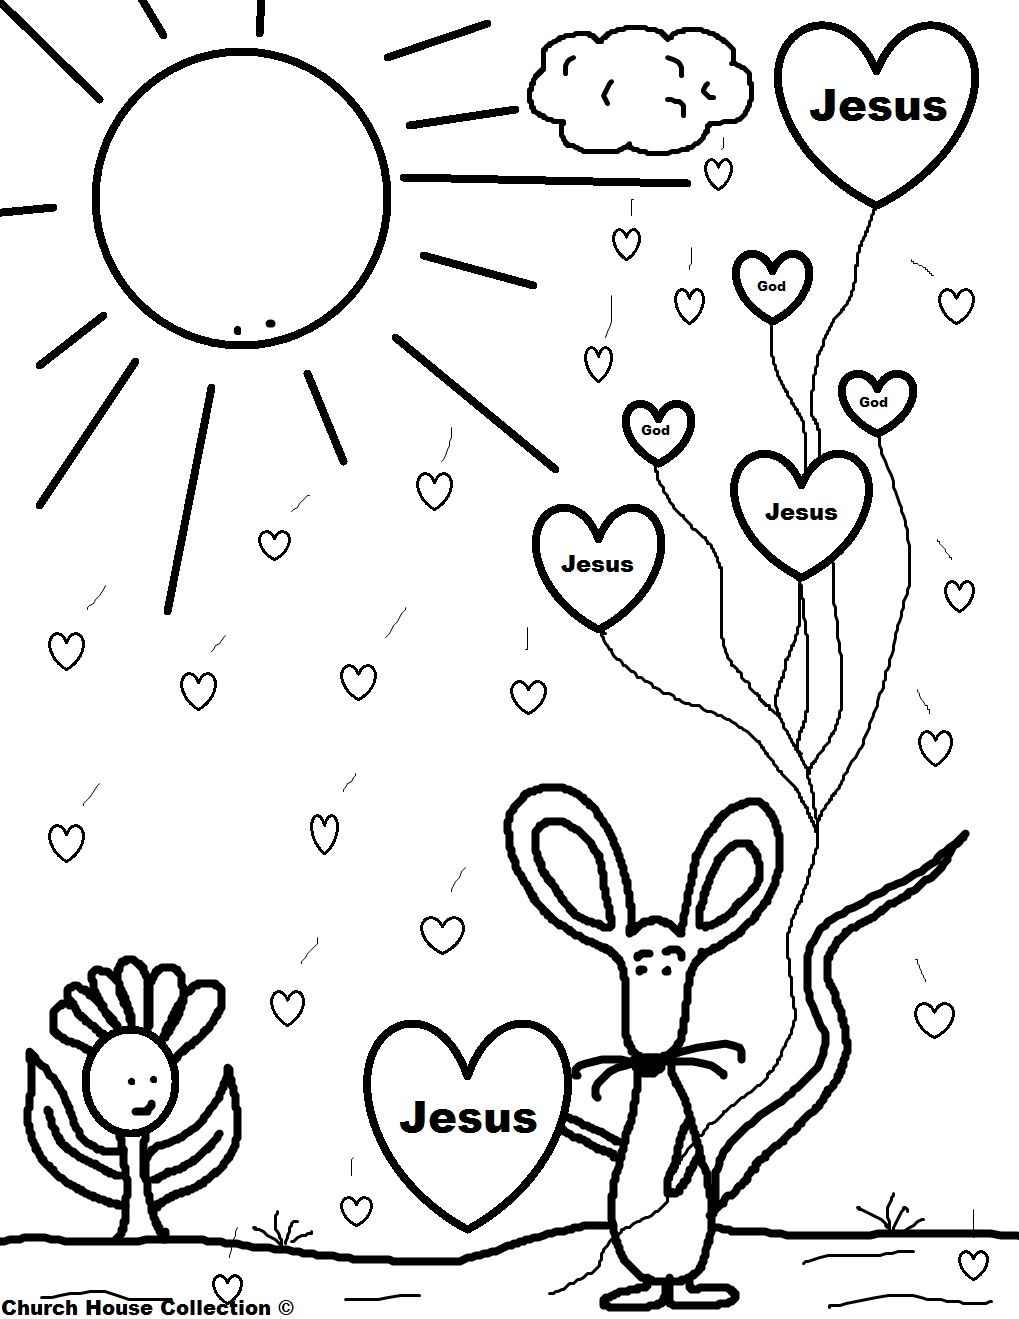 church house collection blog valentine mouse holding jesus balloons coloring page